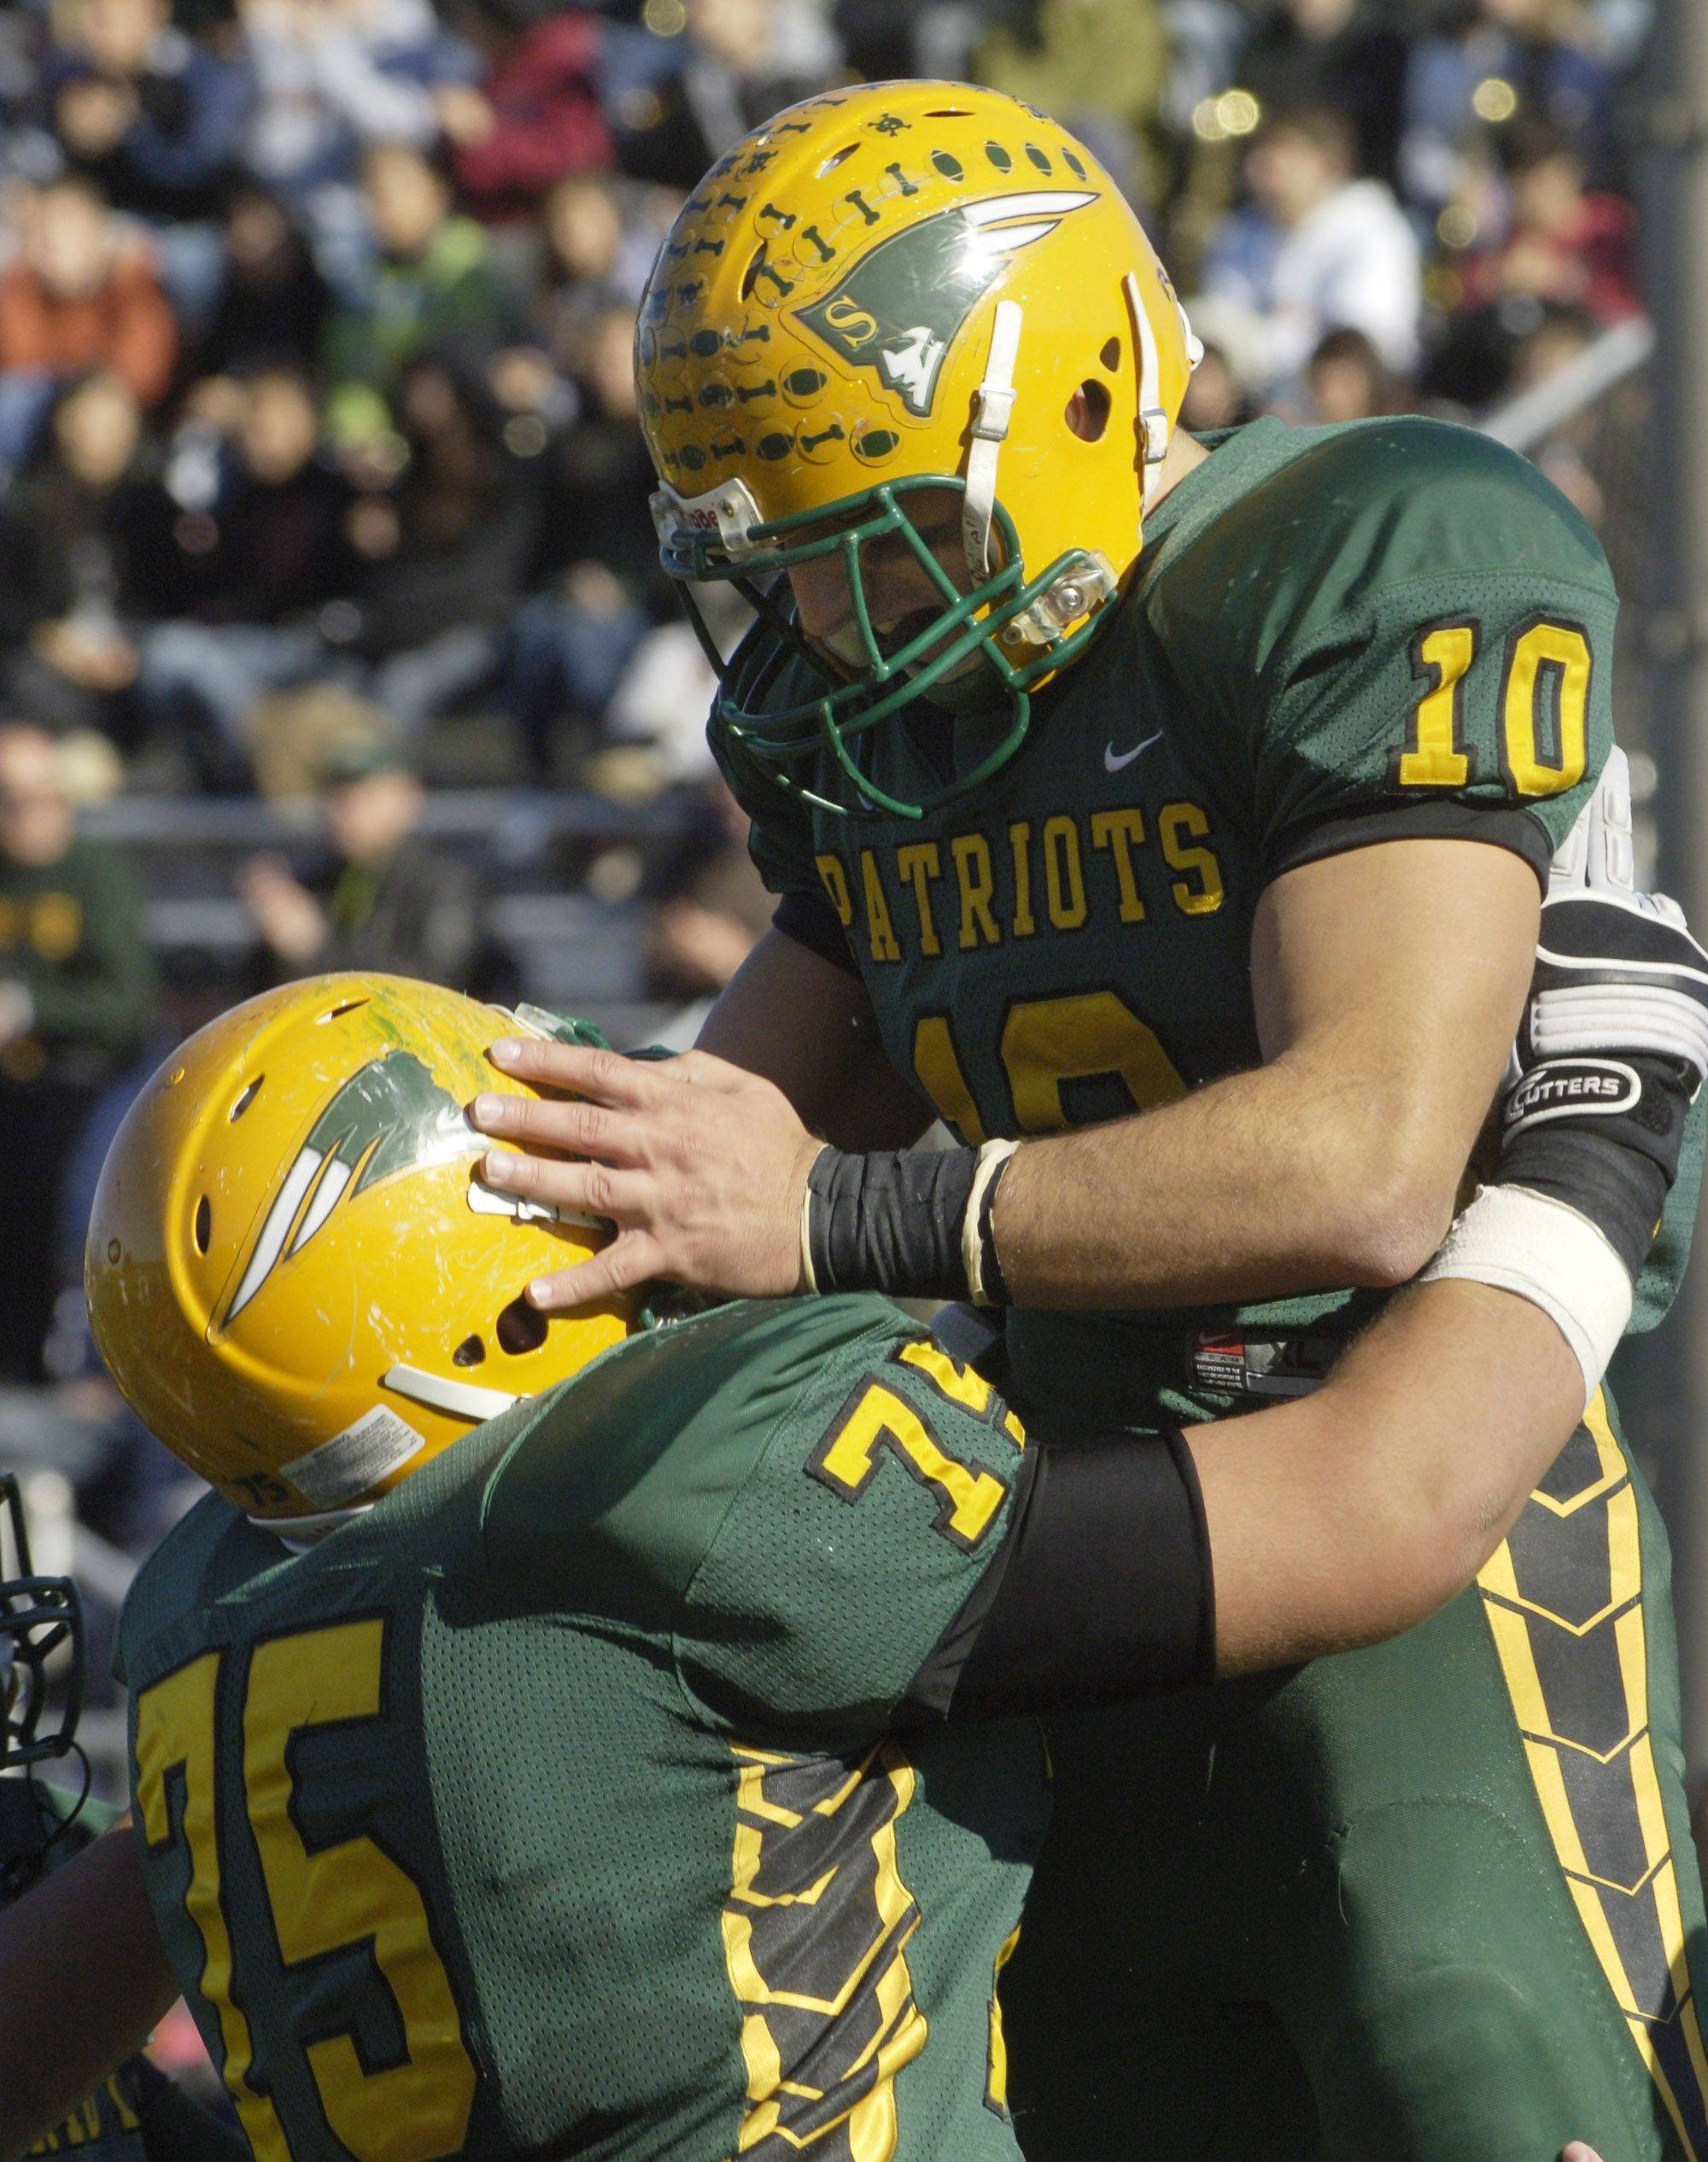 Stevenson's Joseph Cassata, right, celebrates his first quarter touchdown with teammate Jake Hurcombe during Saturday's game against South Elgin.